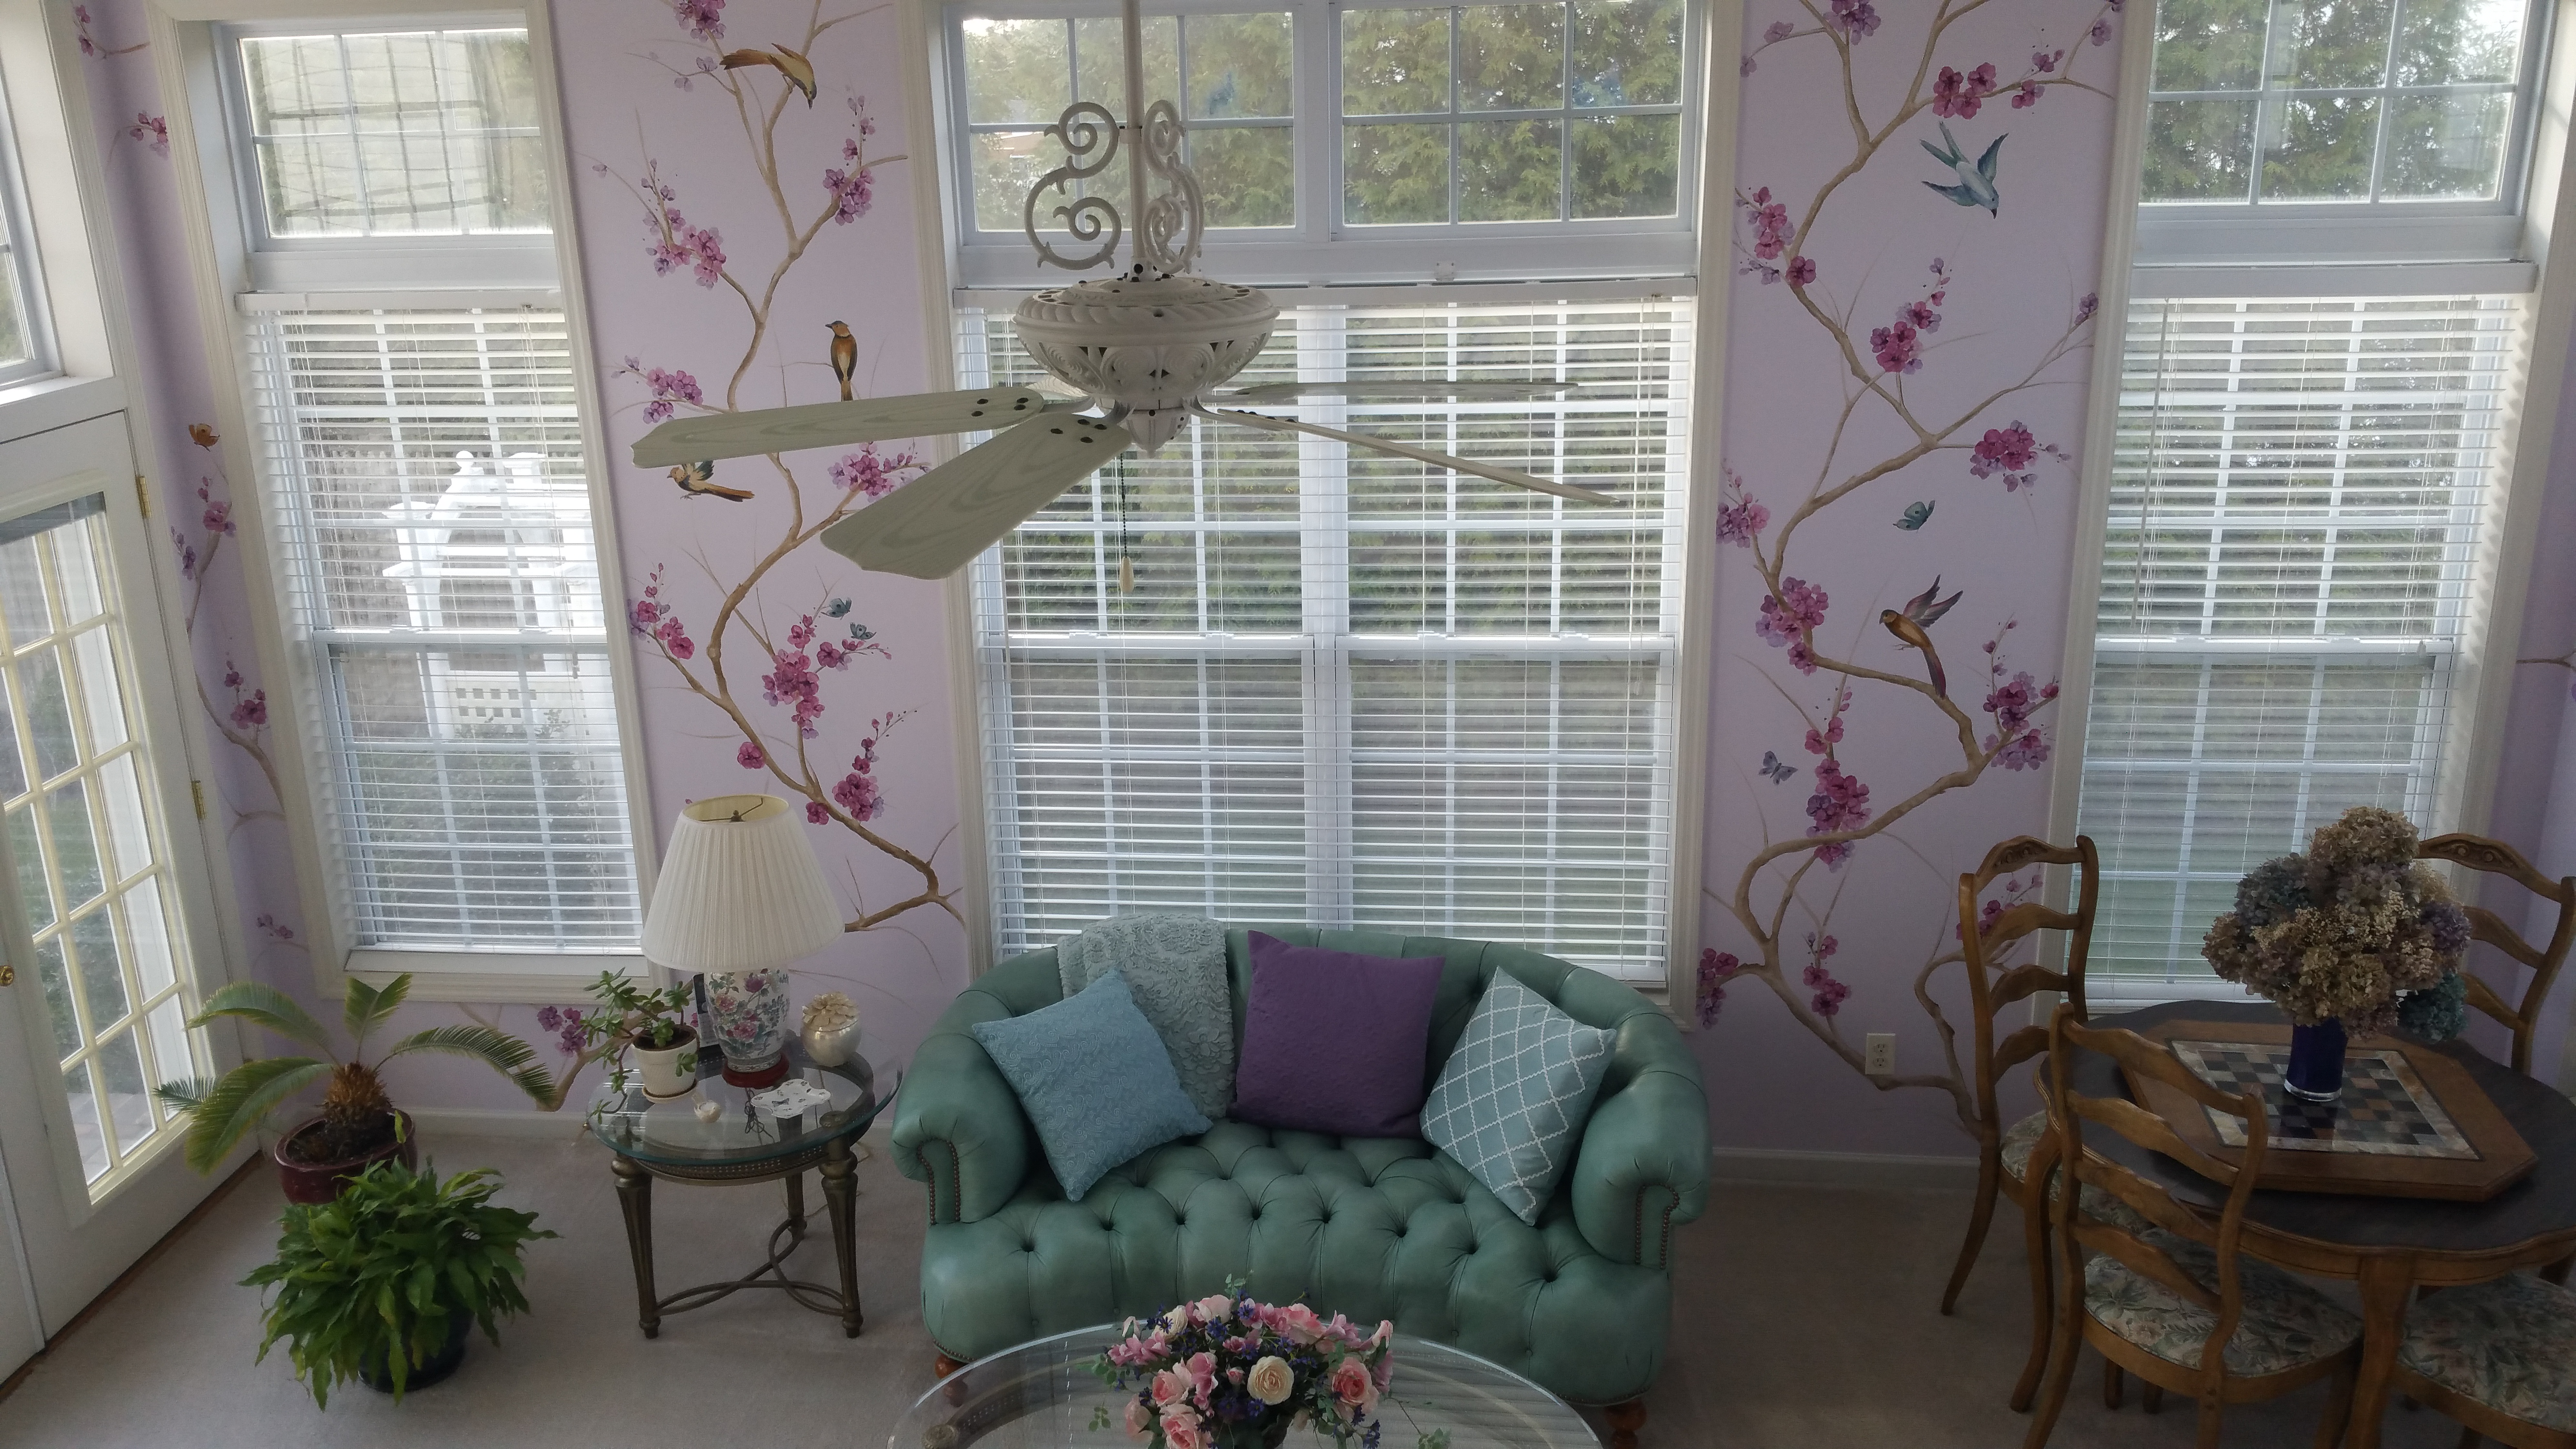 A mundane sitting room is transformed into an Asian-cherry blossom inspired lavender dreamscape, perfect for taking in a cup of tea in the sunshine.